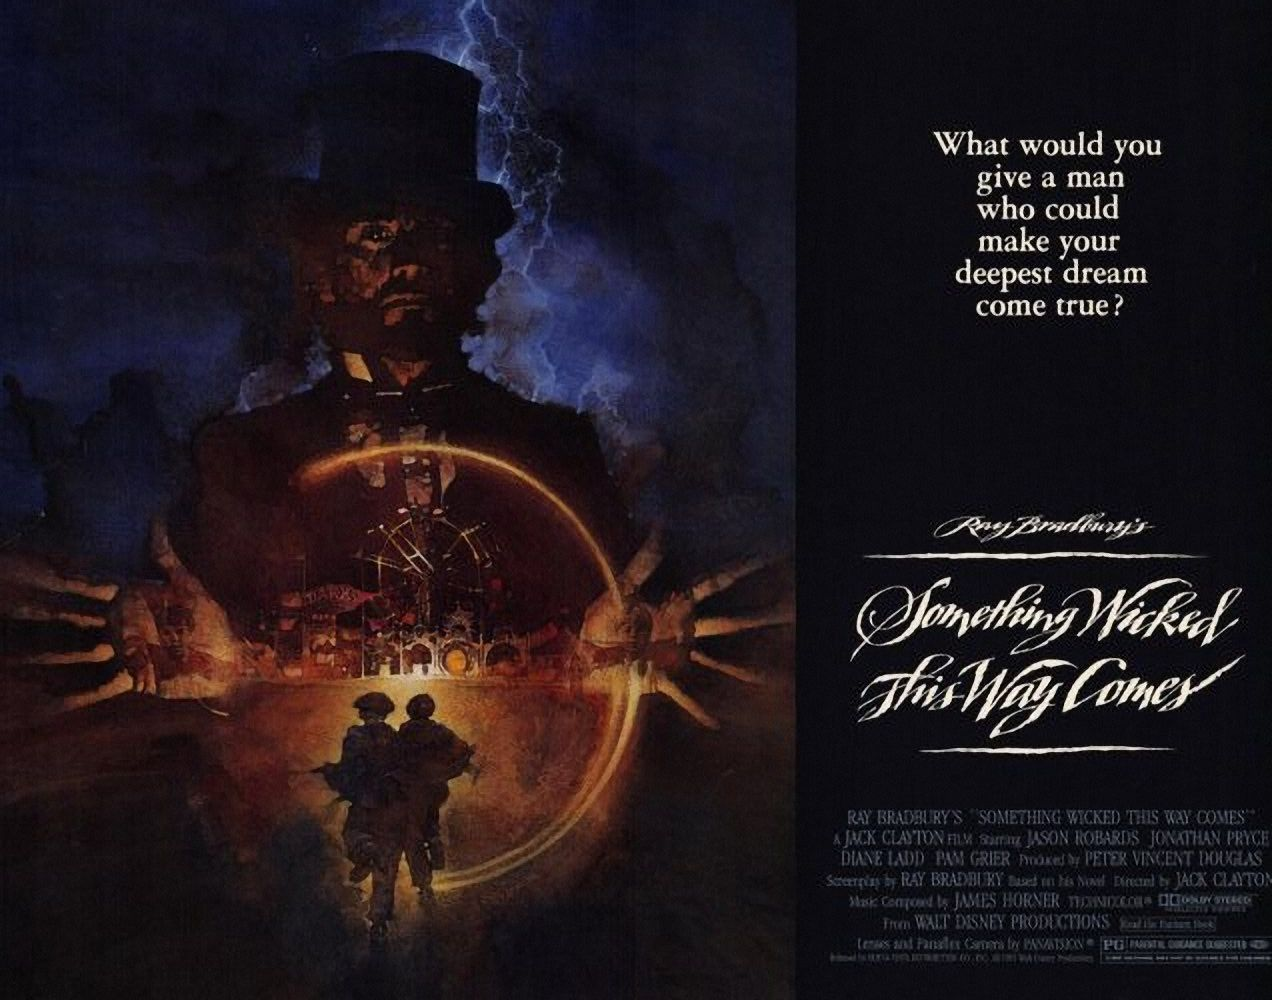 an analysis of something wicked this way comes by ray bradbury